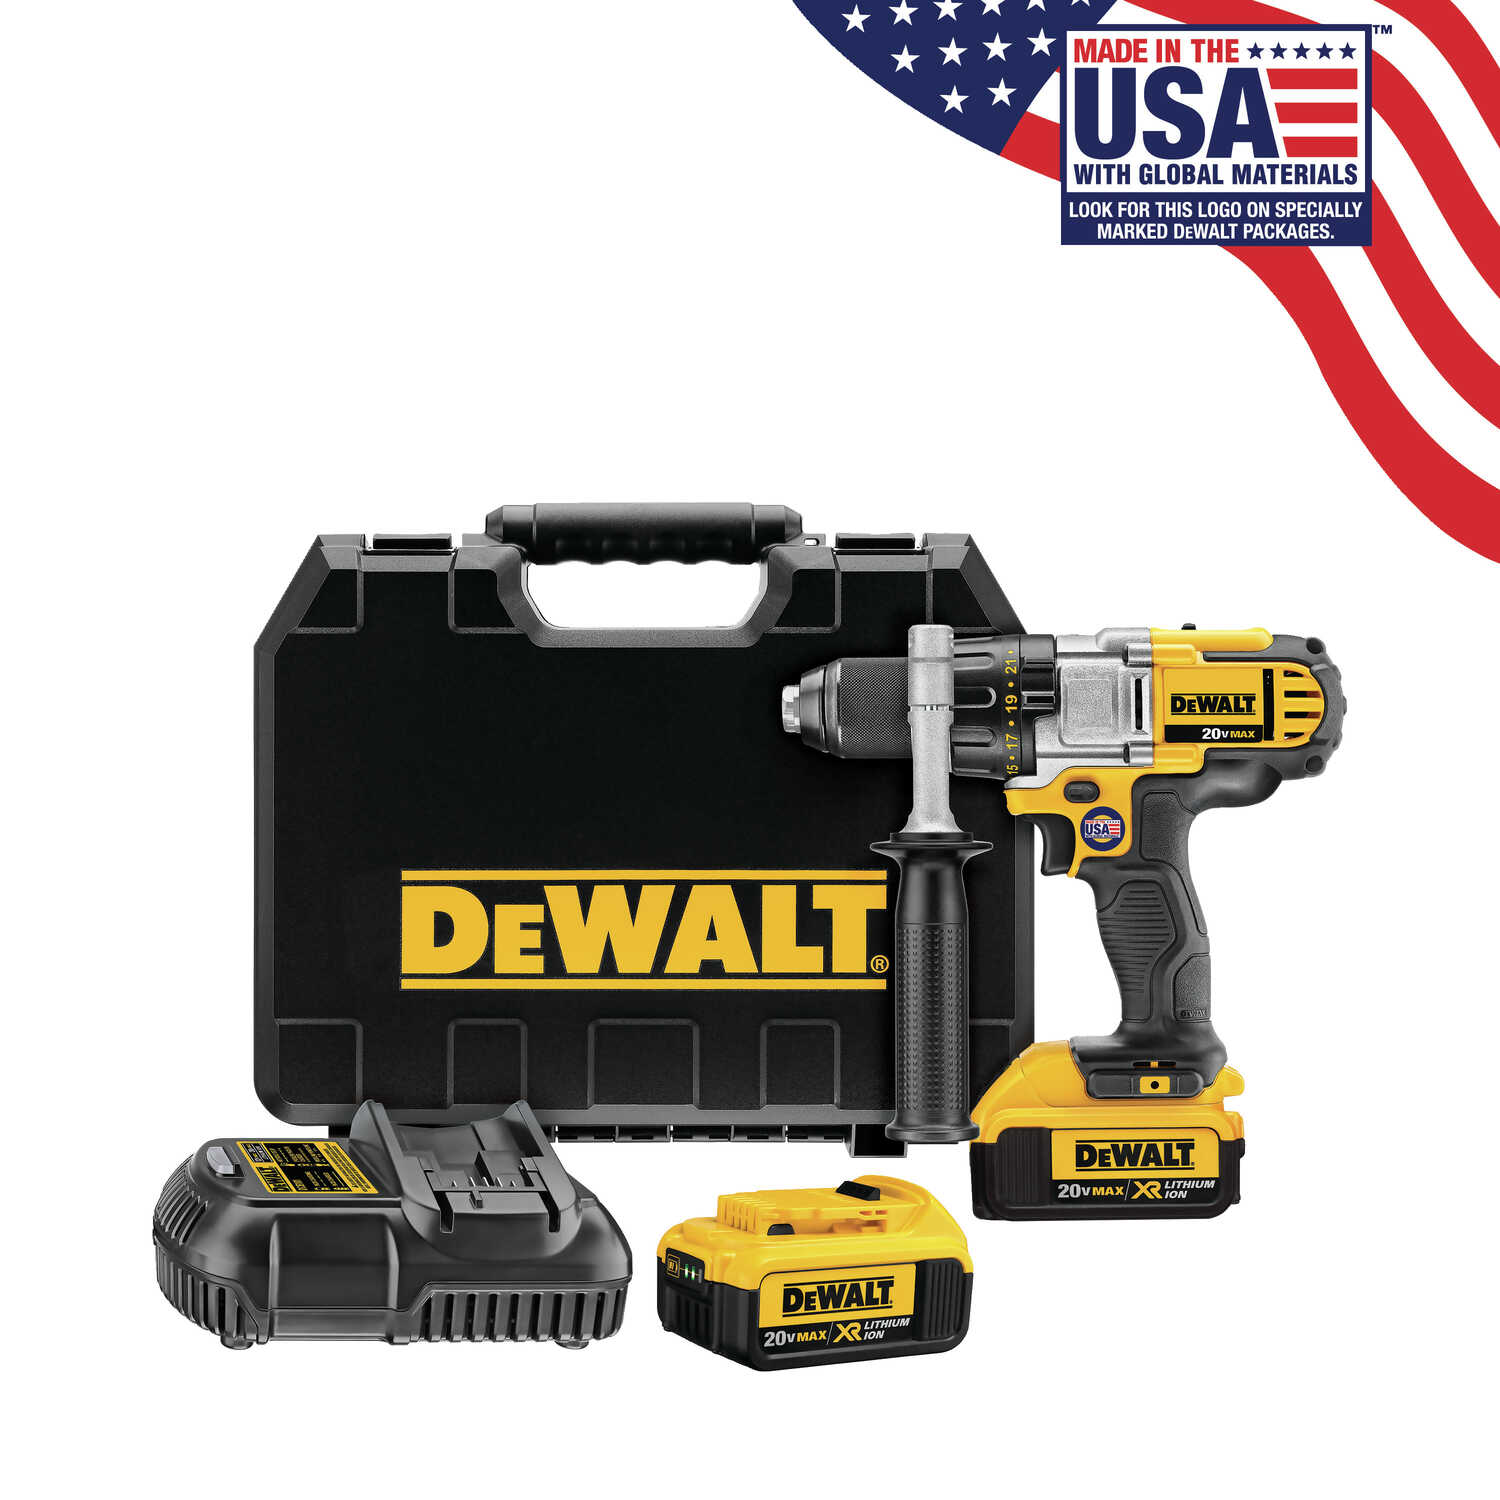 DeWalt  XR Premium  20 volt Brushed  Cordless Drill/Driver  Kit  1/2 in. Metal Ratcheting  2000 rpm